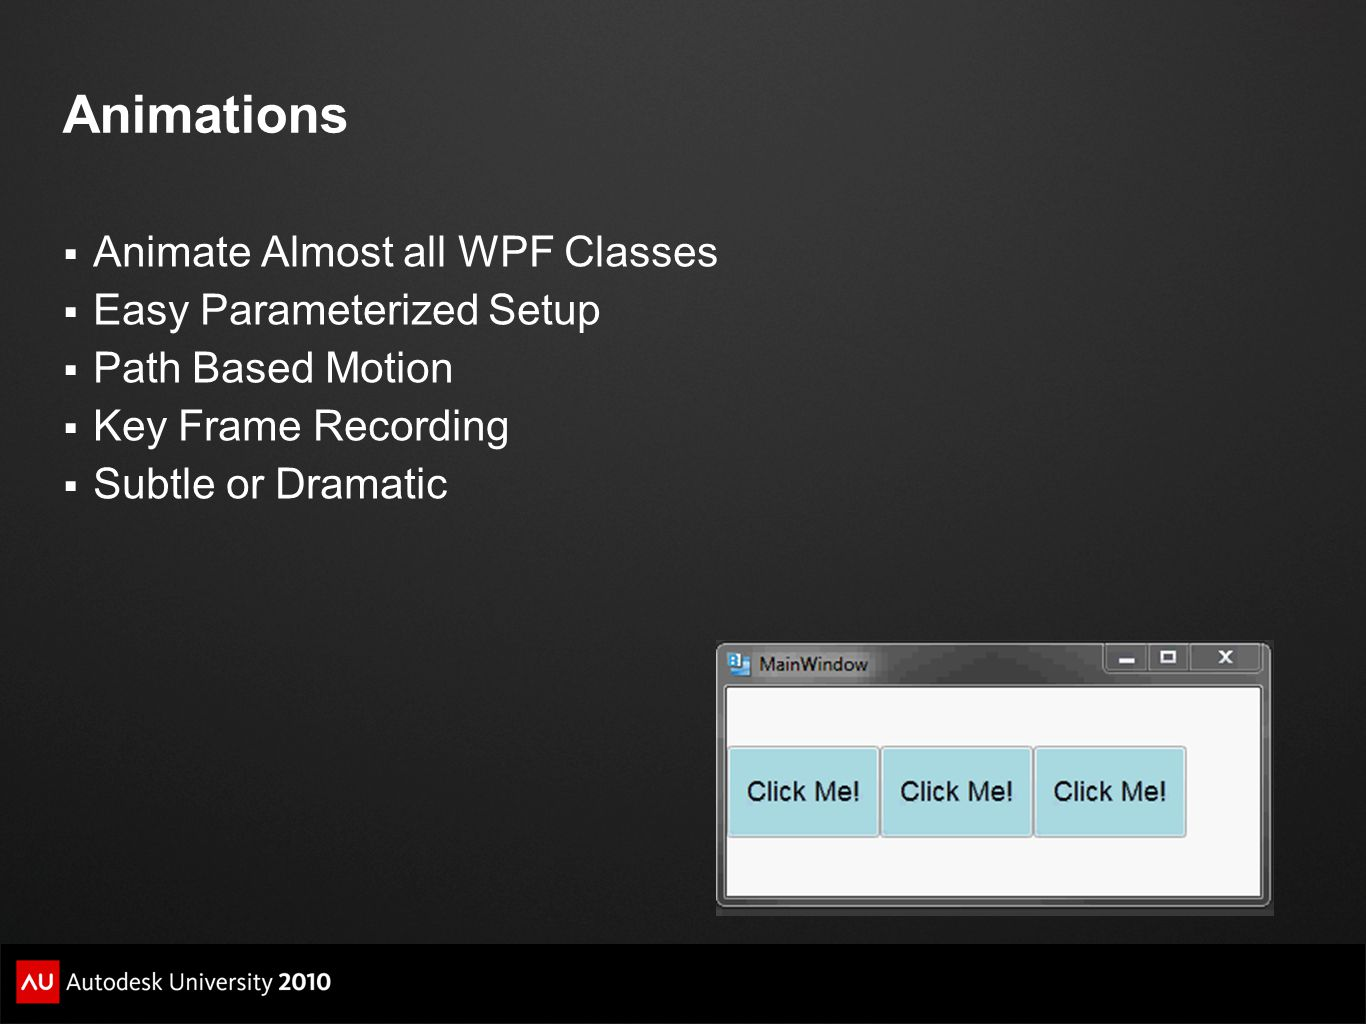 Animations Animate Almost all WPF Classes Easy Parameterized Setup Path Based Motion Key Frame Recording Subtle or Dramatic